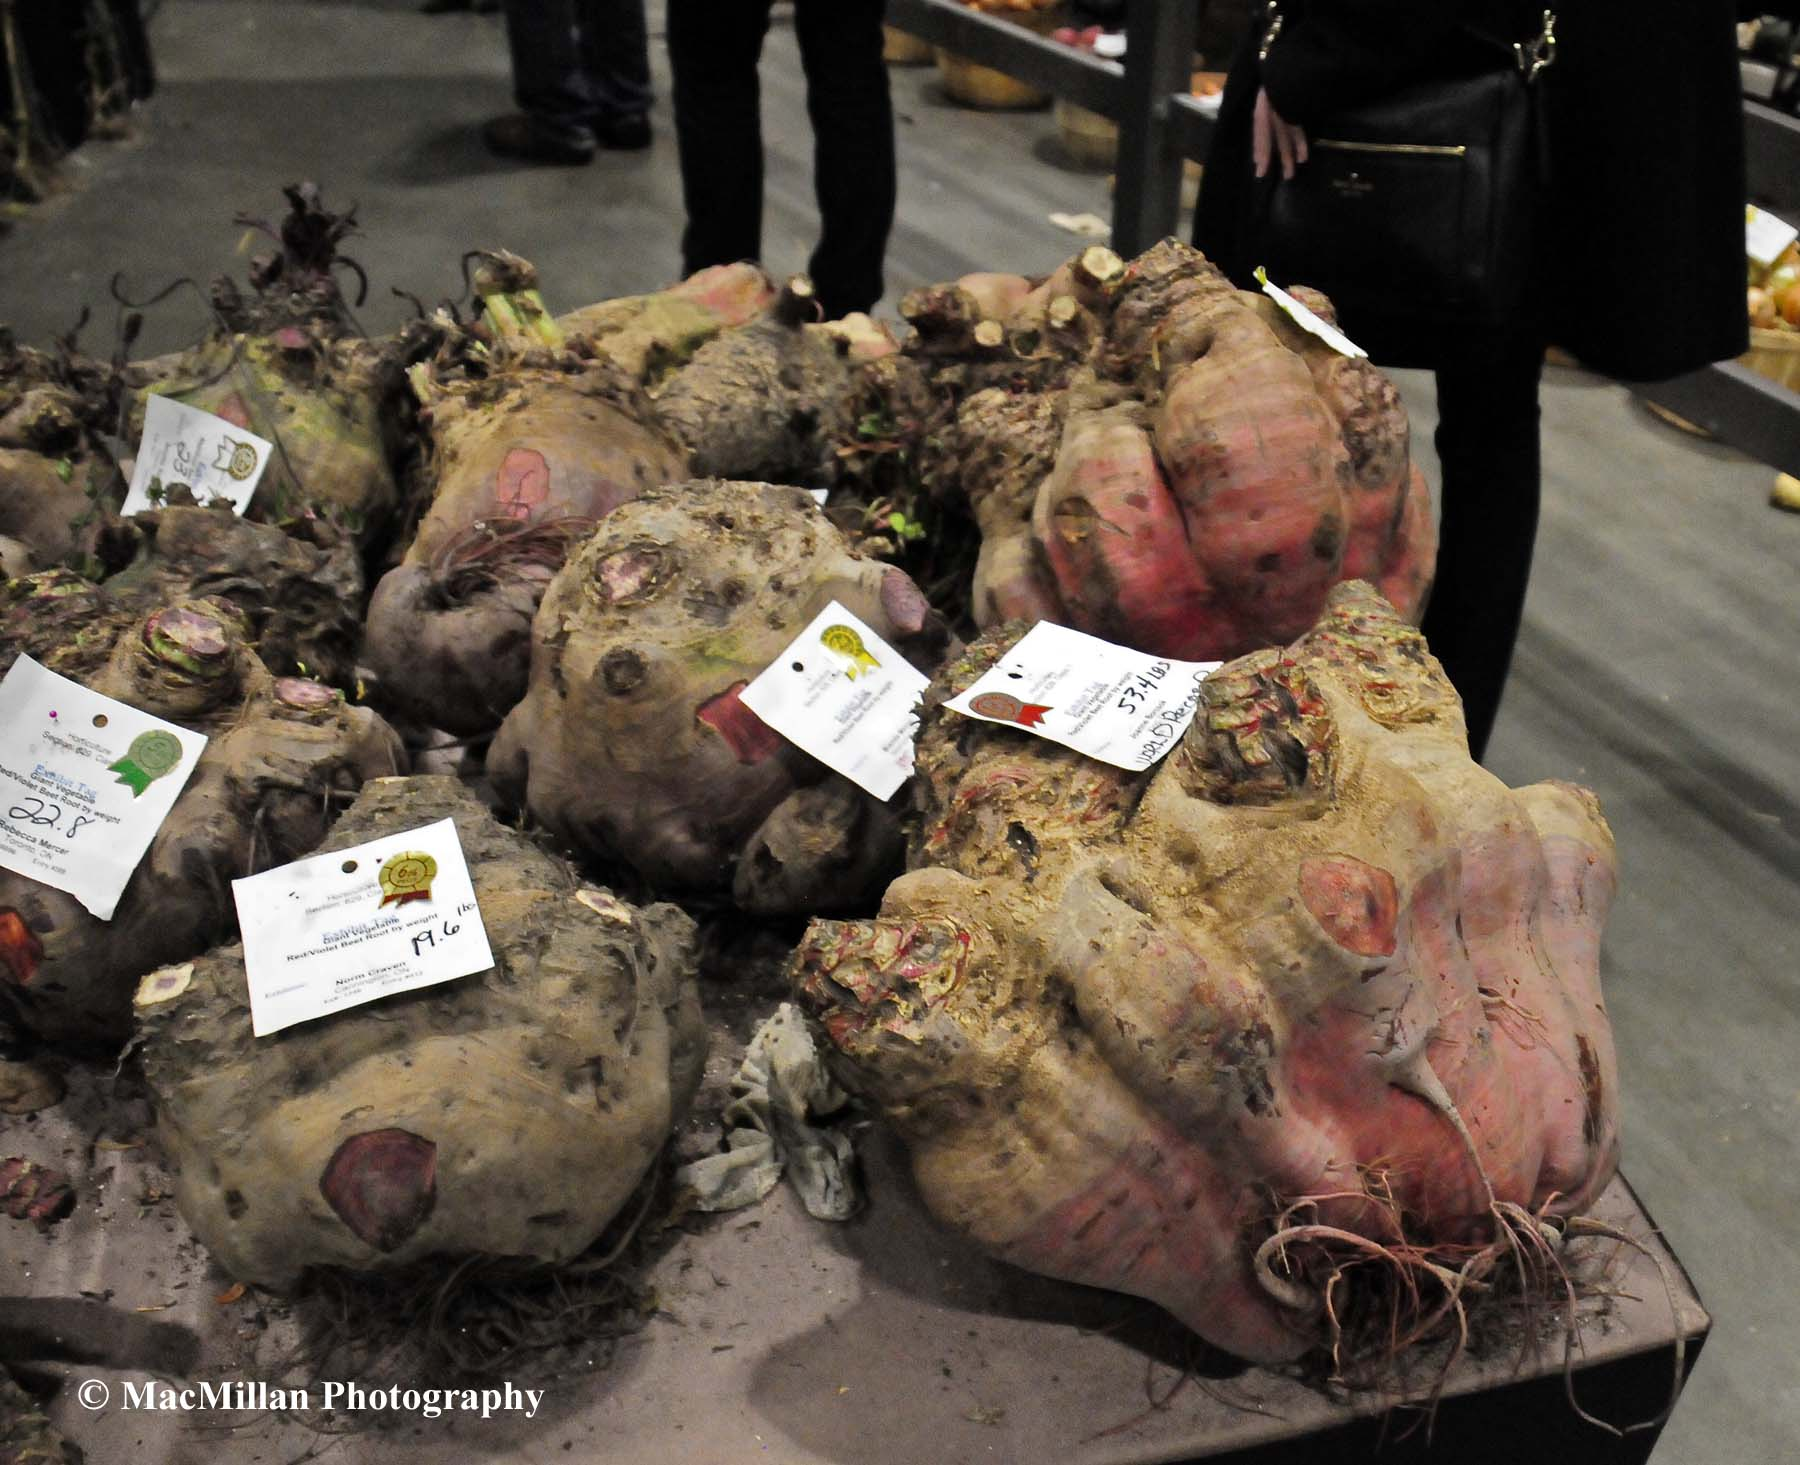 Photo 46 – The Royal Vegetable Show had classes for the largest vegetables. The rutabaga in the foreground entered by Chris Lyons was the Royal champion and a world record at 53.4 pounds. Photo by Sarah Miller/MacMillan Photography